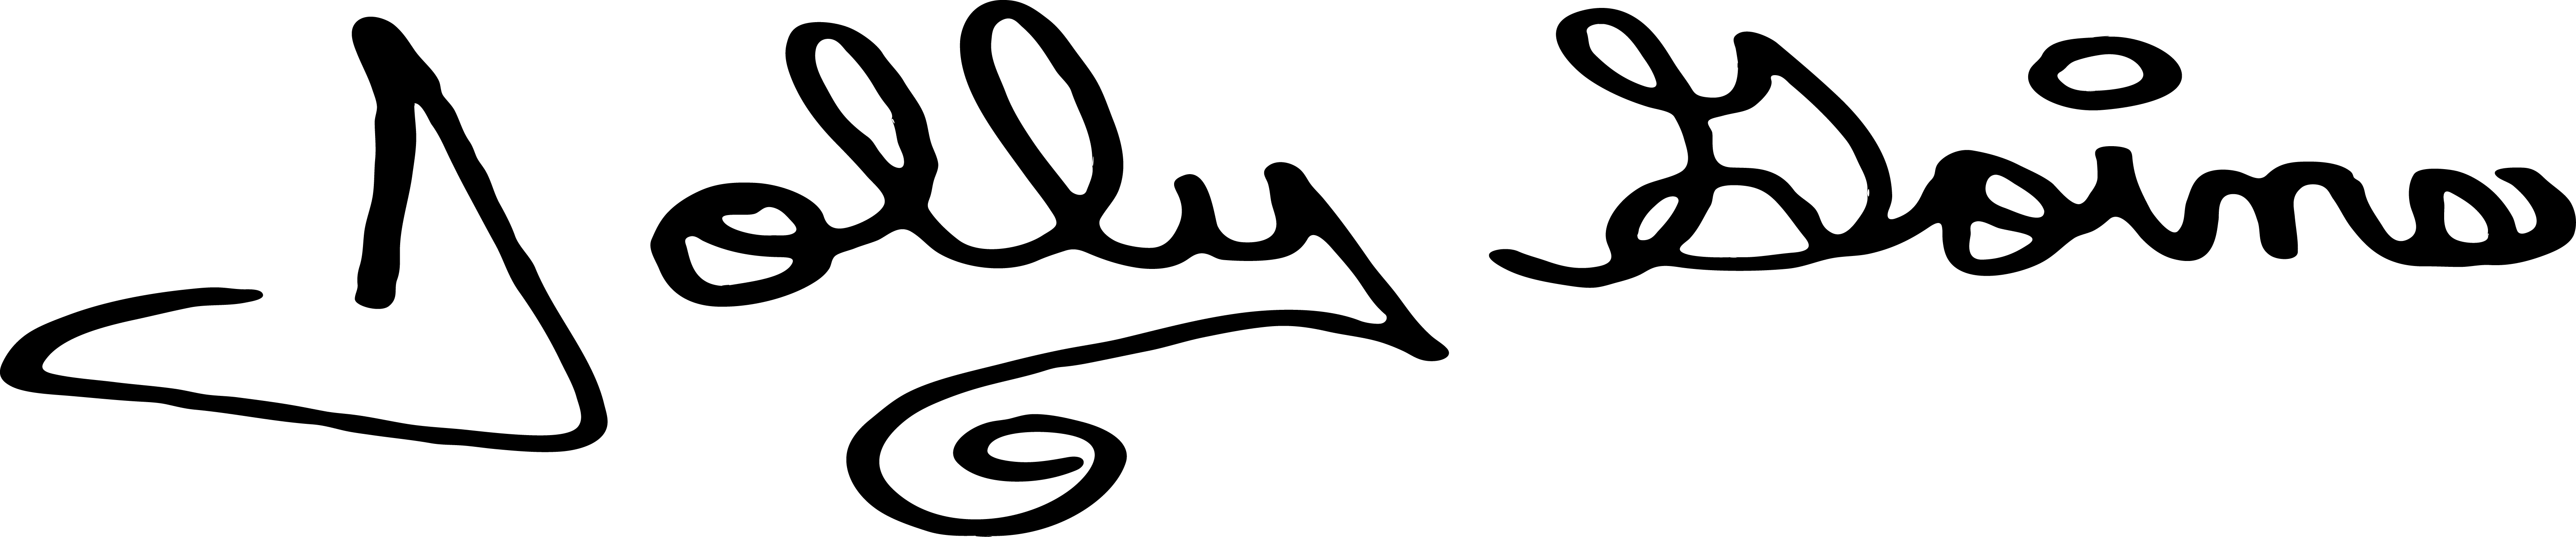 Jolly Goins's Signature